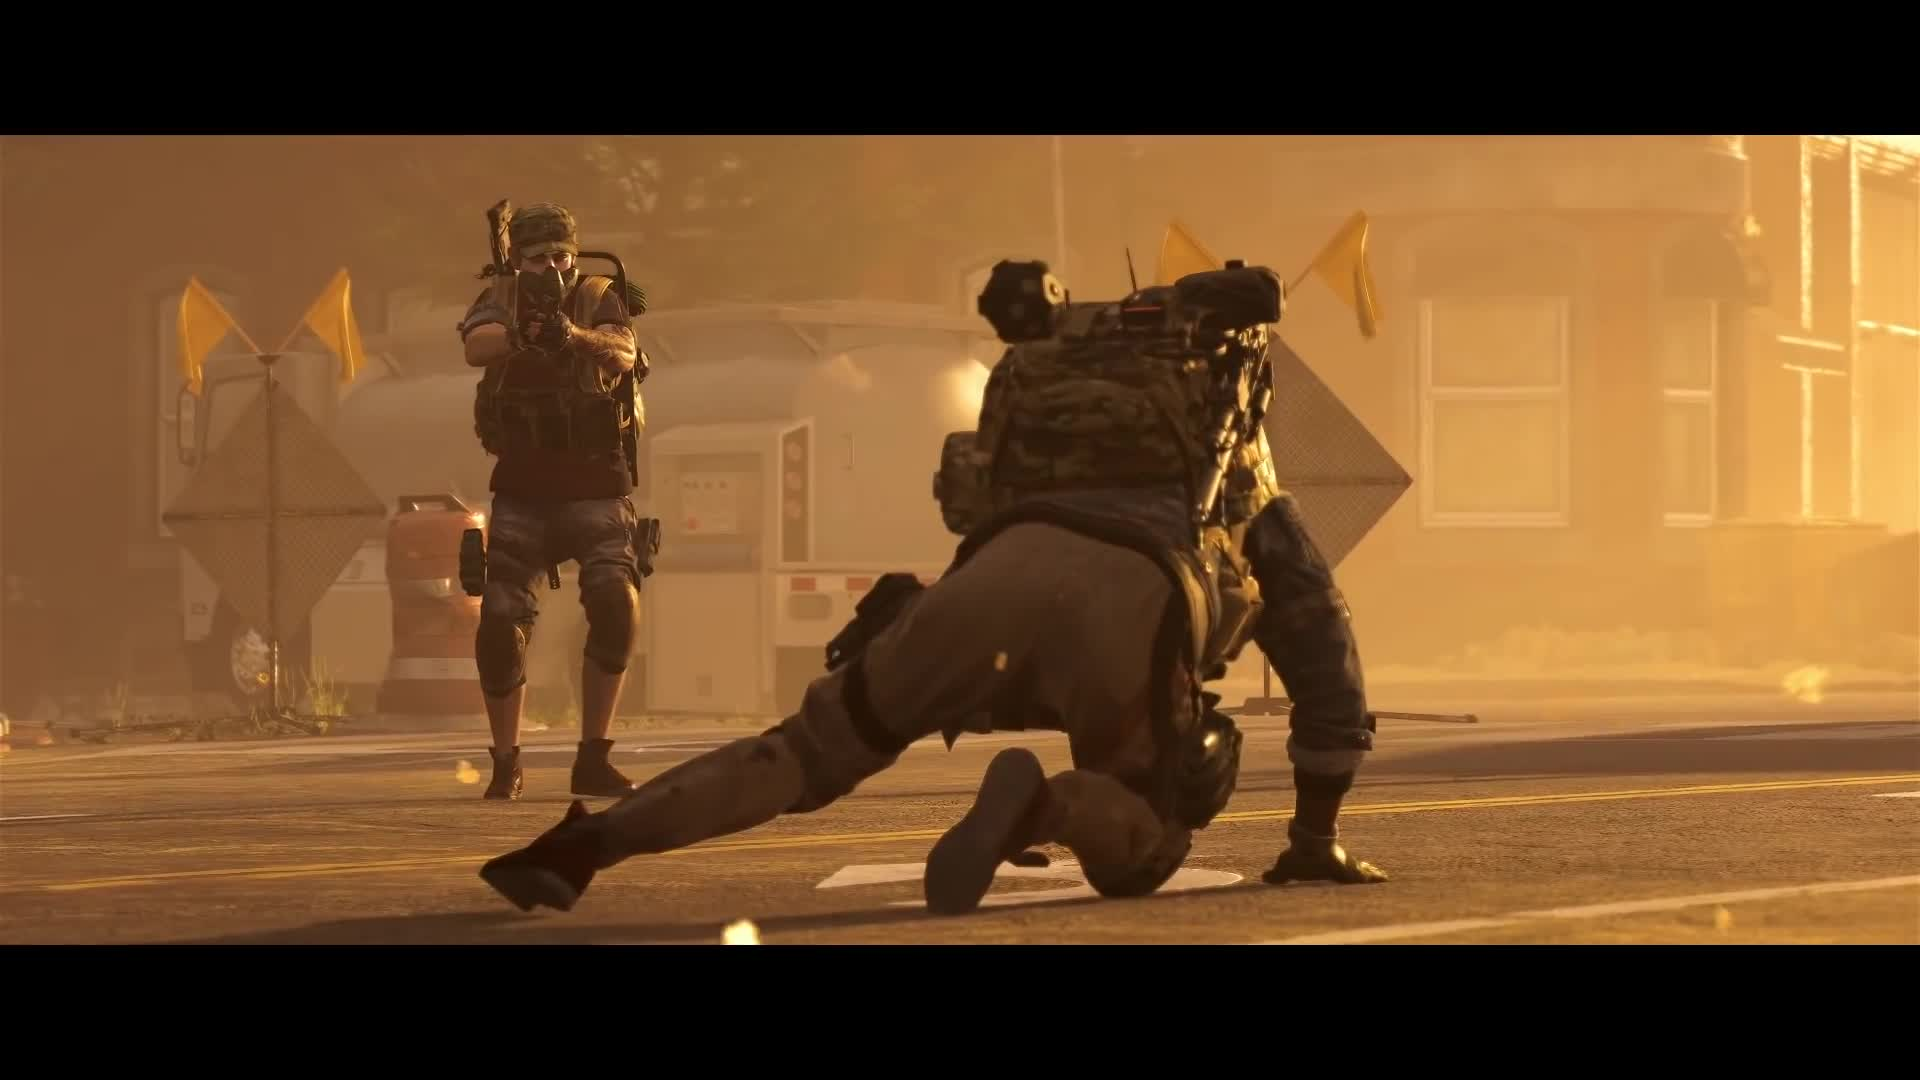 Trailer, Ubisoft, actionspiel, Tom Clancy, The Division 2, Tom Clancy's The Division 2